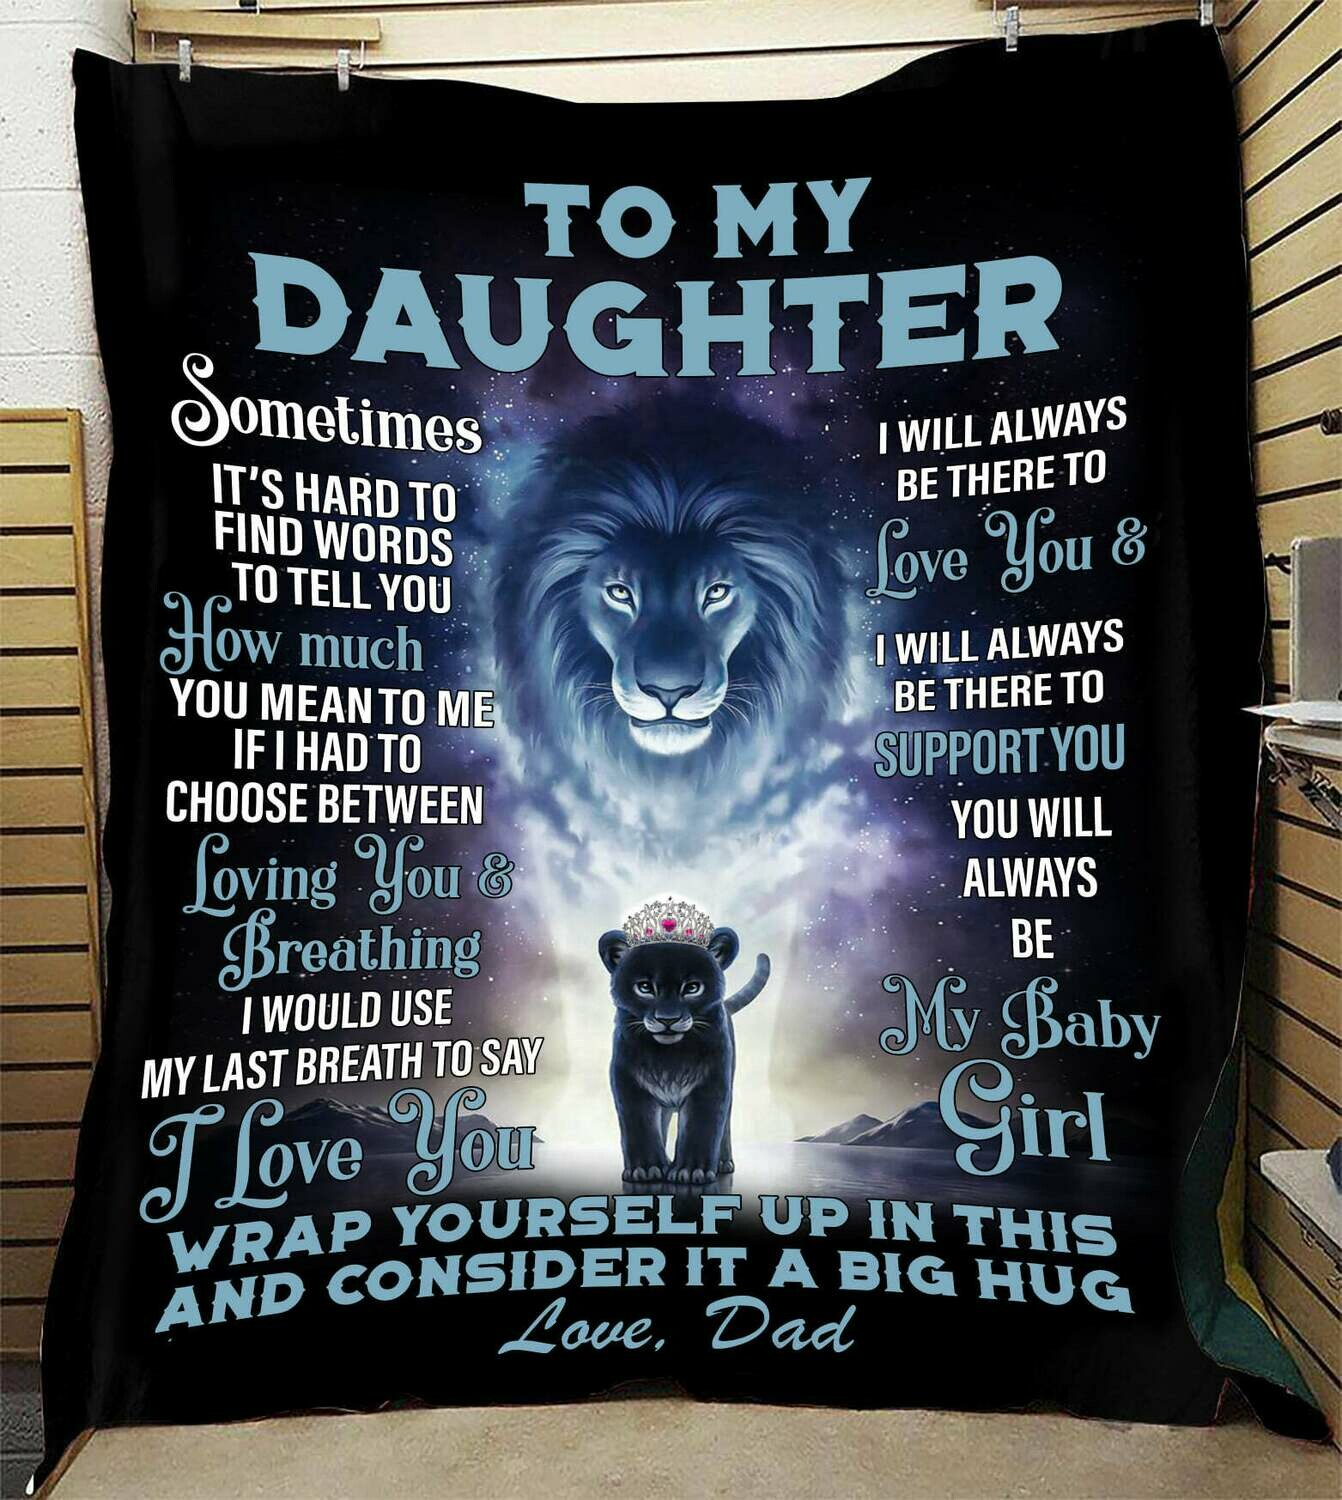 To My Daughter Sometimes It's Hard To Find Words To Tell You How Much You Mean To Me Fleece Blanket Nice Gift From Lion Dad For Daughter